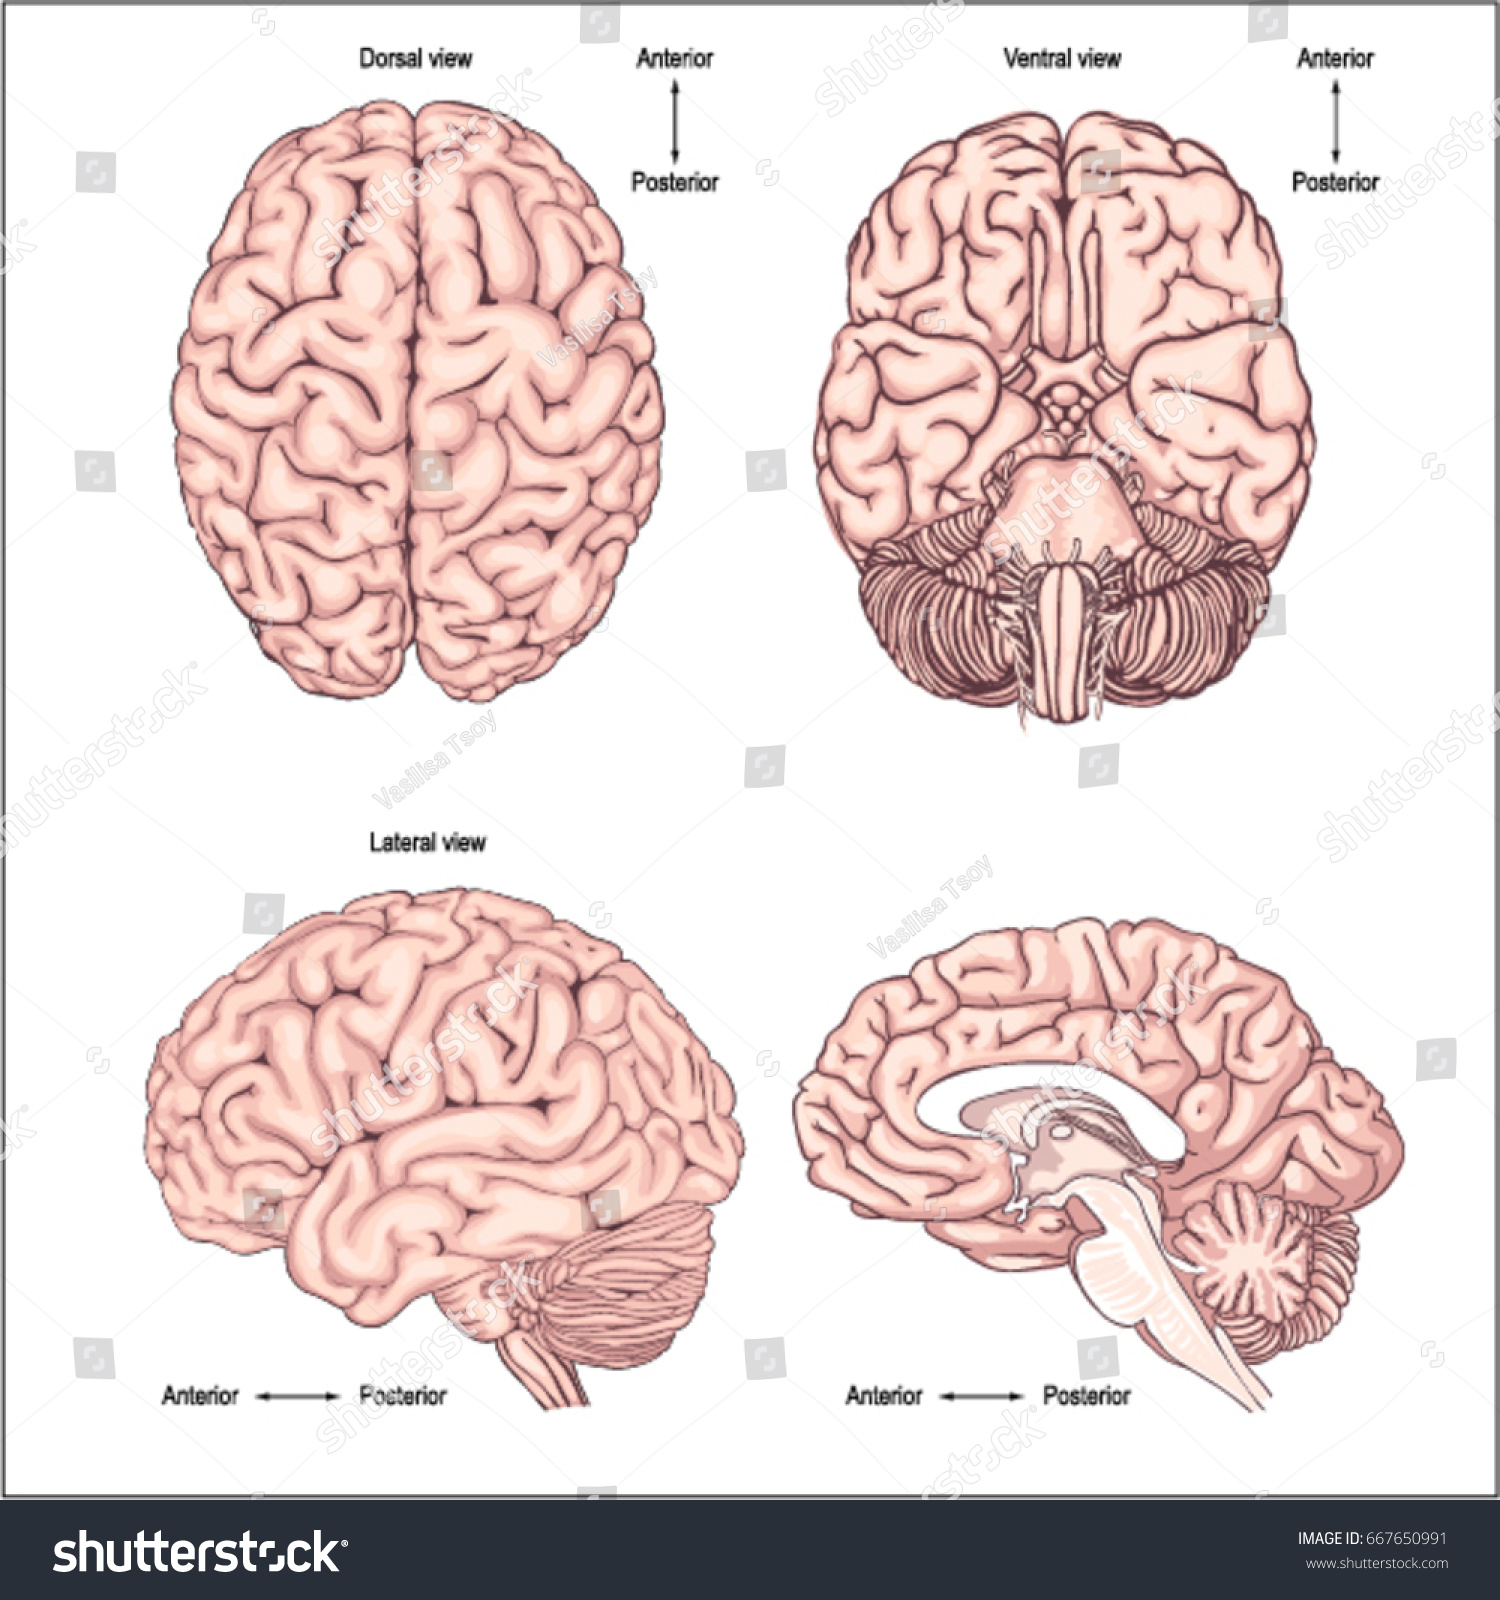 Diagram Brain Top Side Front Back Stock Vector (Royalty Free ...